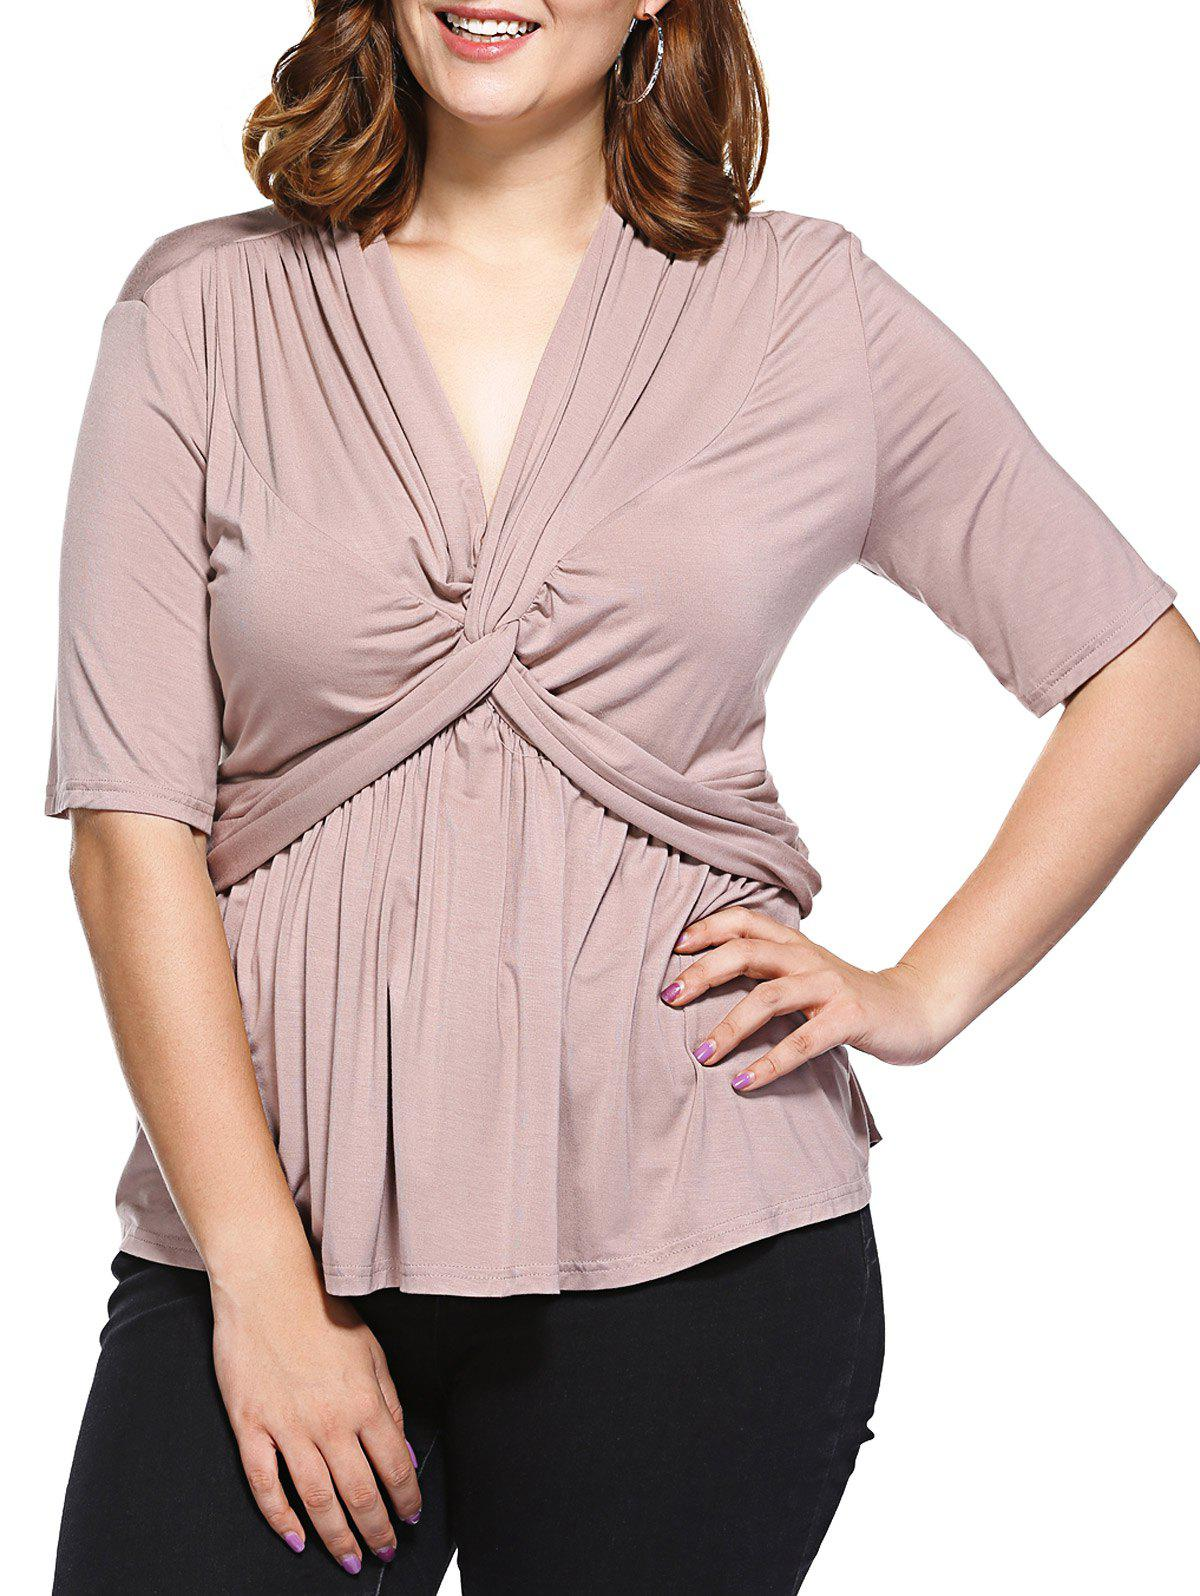 Fashionable V-Neck Fitted Tangle Up Top For WomenWomen<br><br><br>Size: 3XL<br>Color: APRICOT